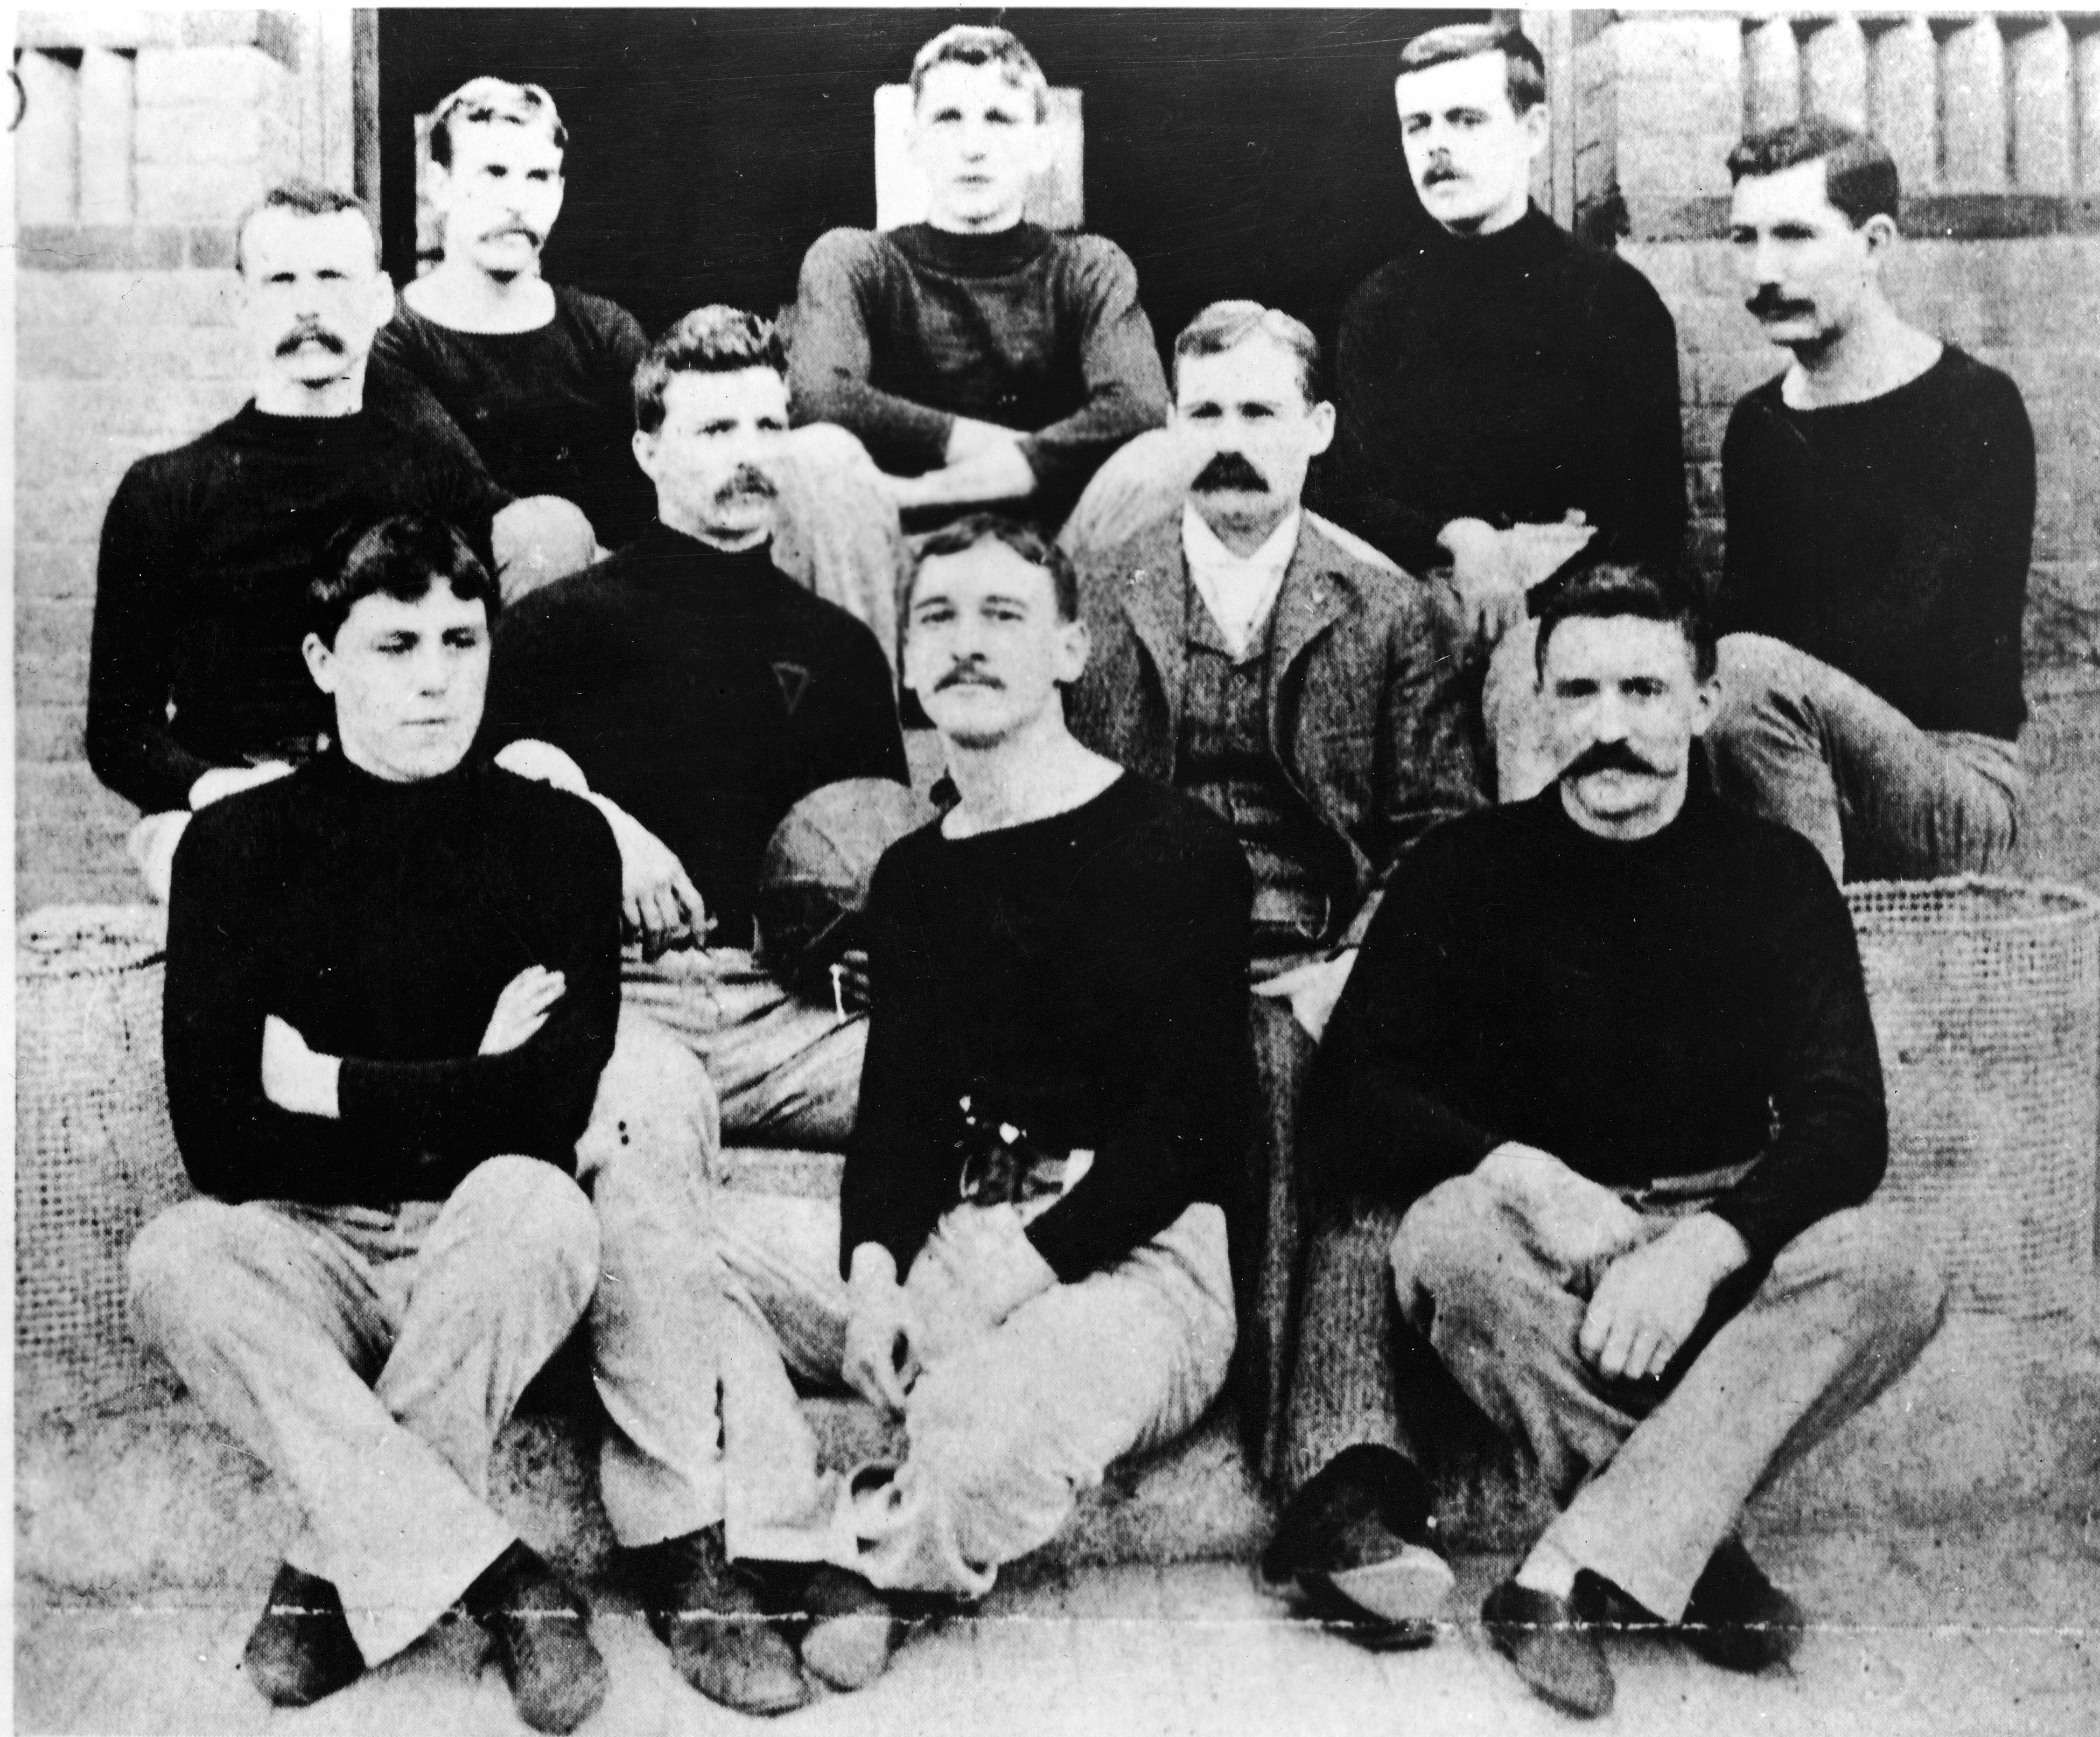 Dr. James Naismith (1861 - 1939) with his first basketball team in Springfield, Massachusetts, 1891.